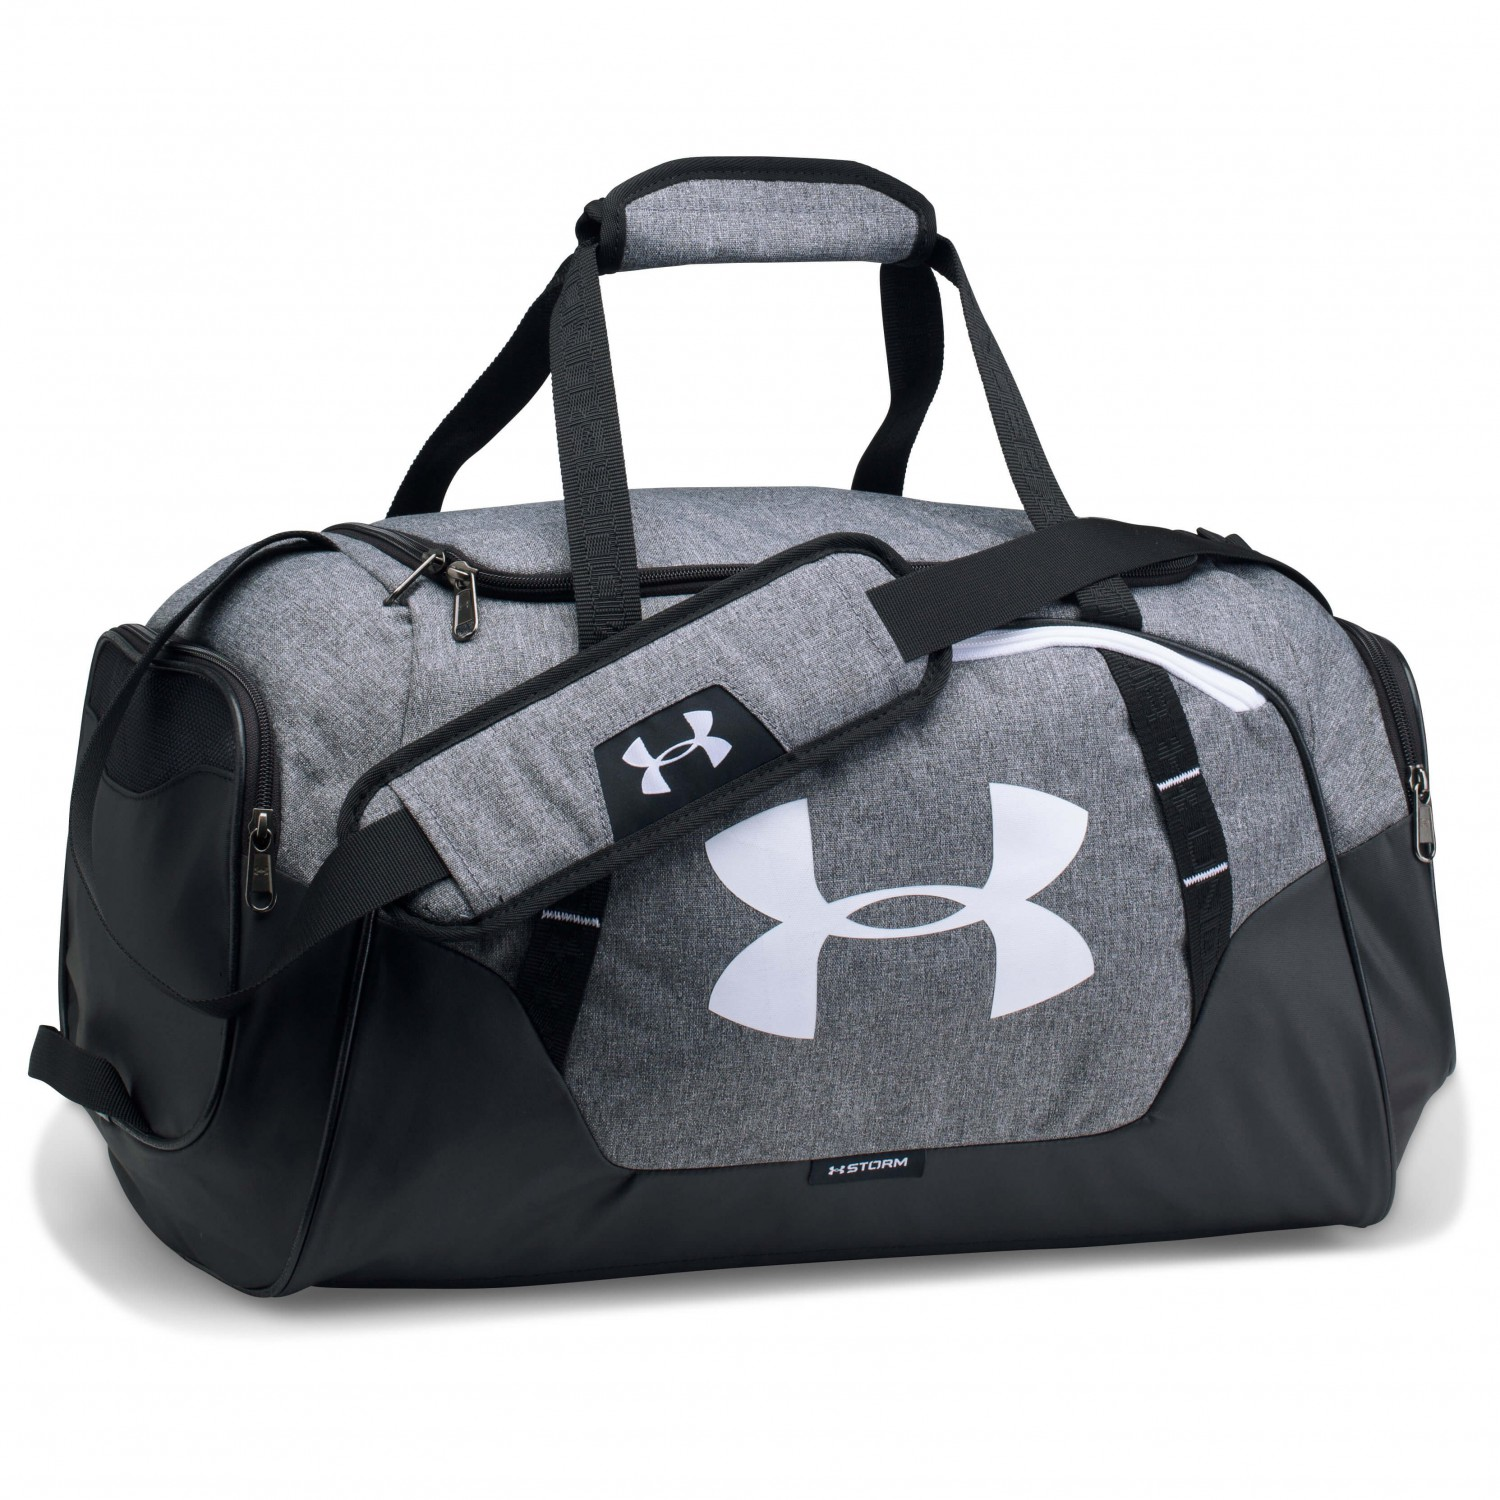 Undeniable Armour Voyage Achat Duffle De 3 Small En Sac 0 Under CPFUqw5